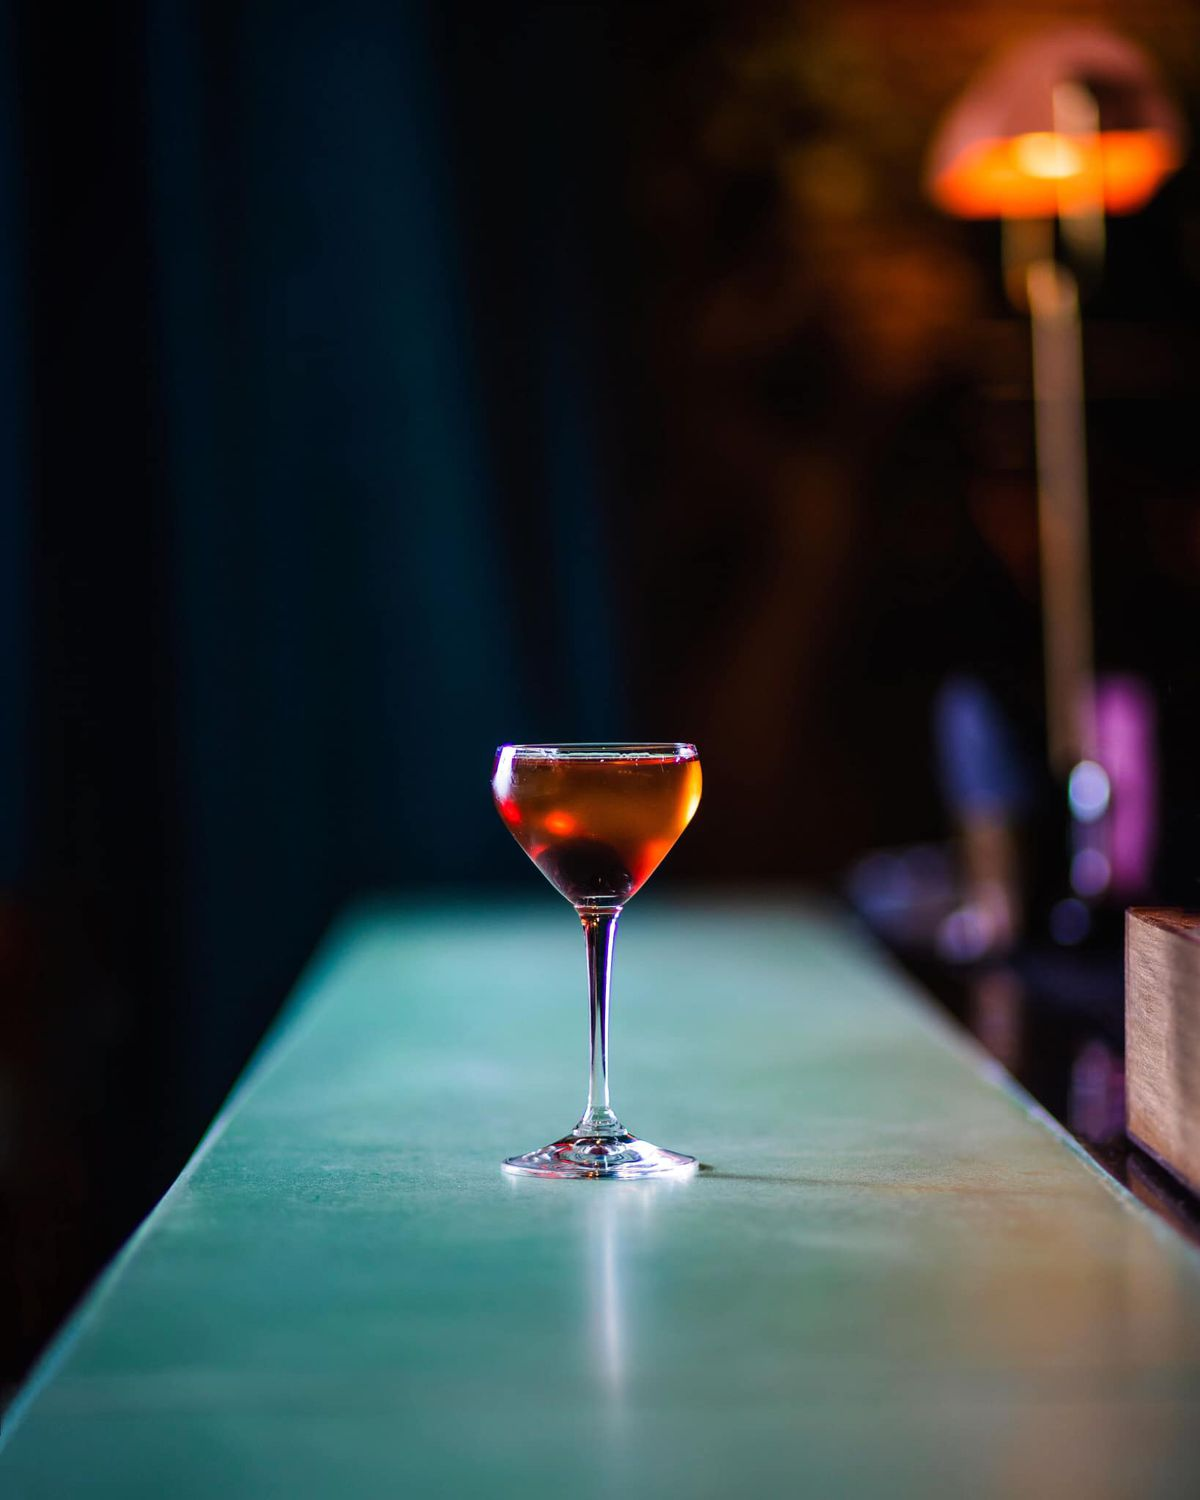 A whiskey cocktail sits on a green bar.